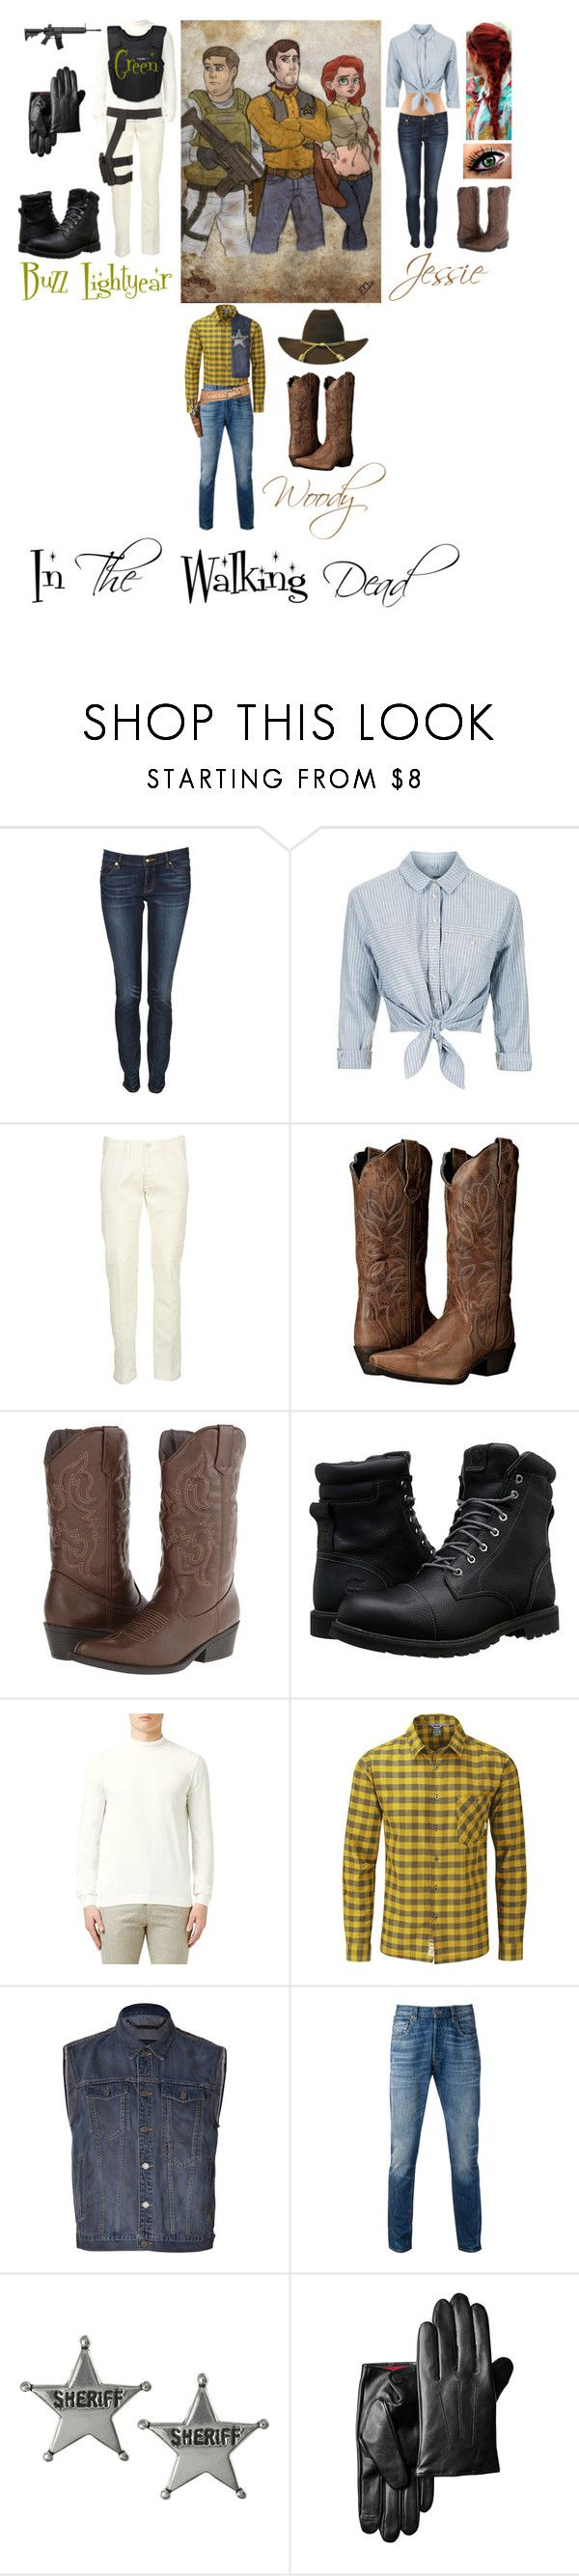 """Buzz, Woody, and Jessie in The Walking Dead"" by foxykitty-1 ❤ liked on Polyvore featuring Disney, Juicy Couture, Topshop, Edwin, Laredo, Madden Girl, Timberland, Topman, Rab and Marc by Marc Jacobs"